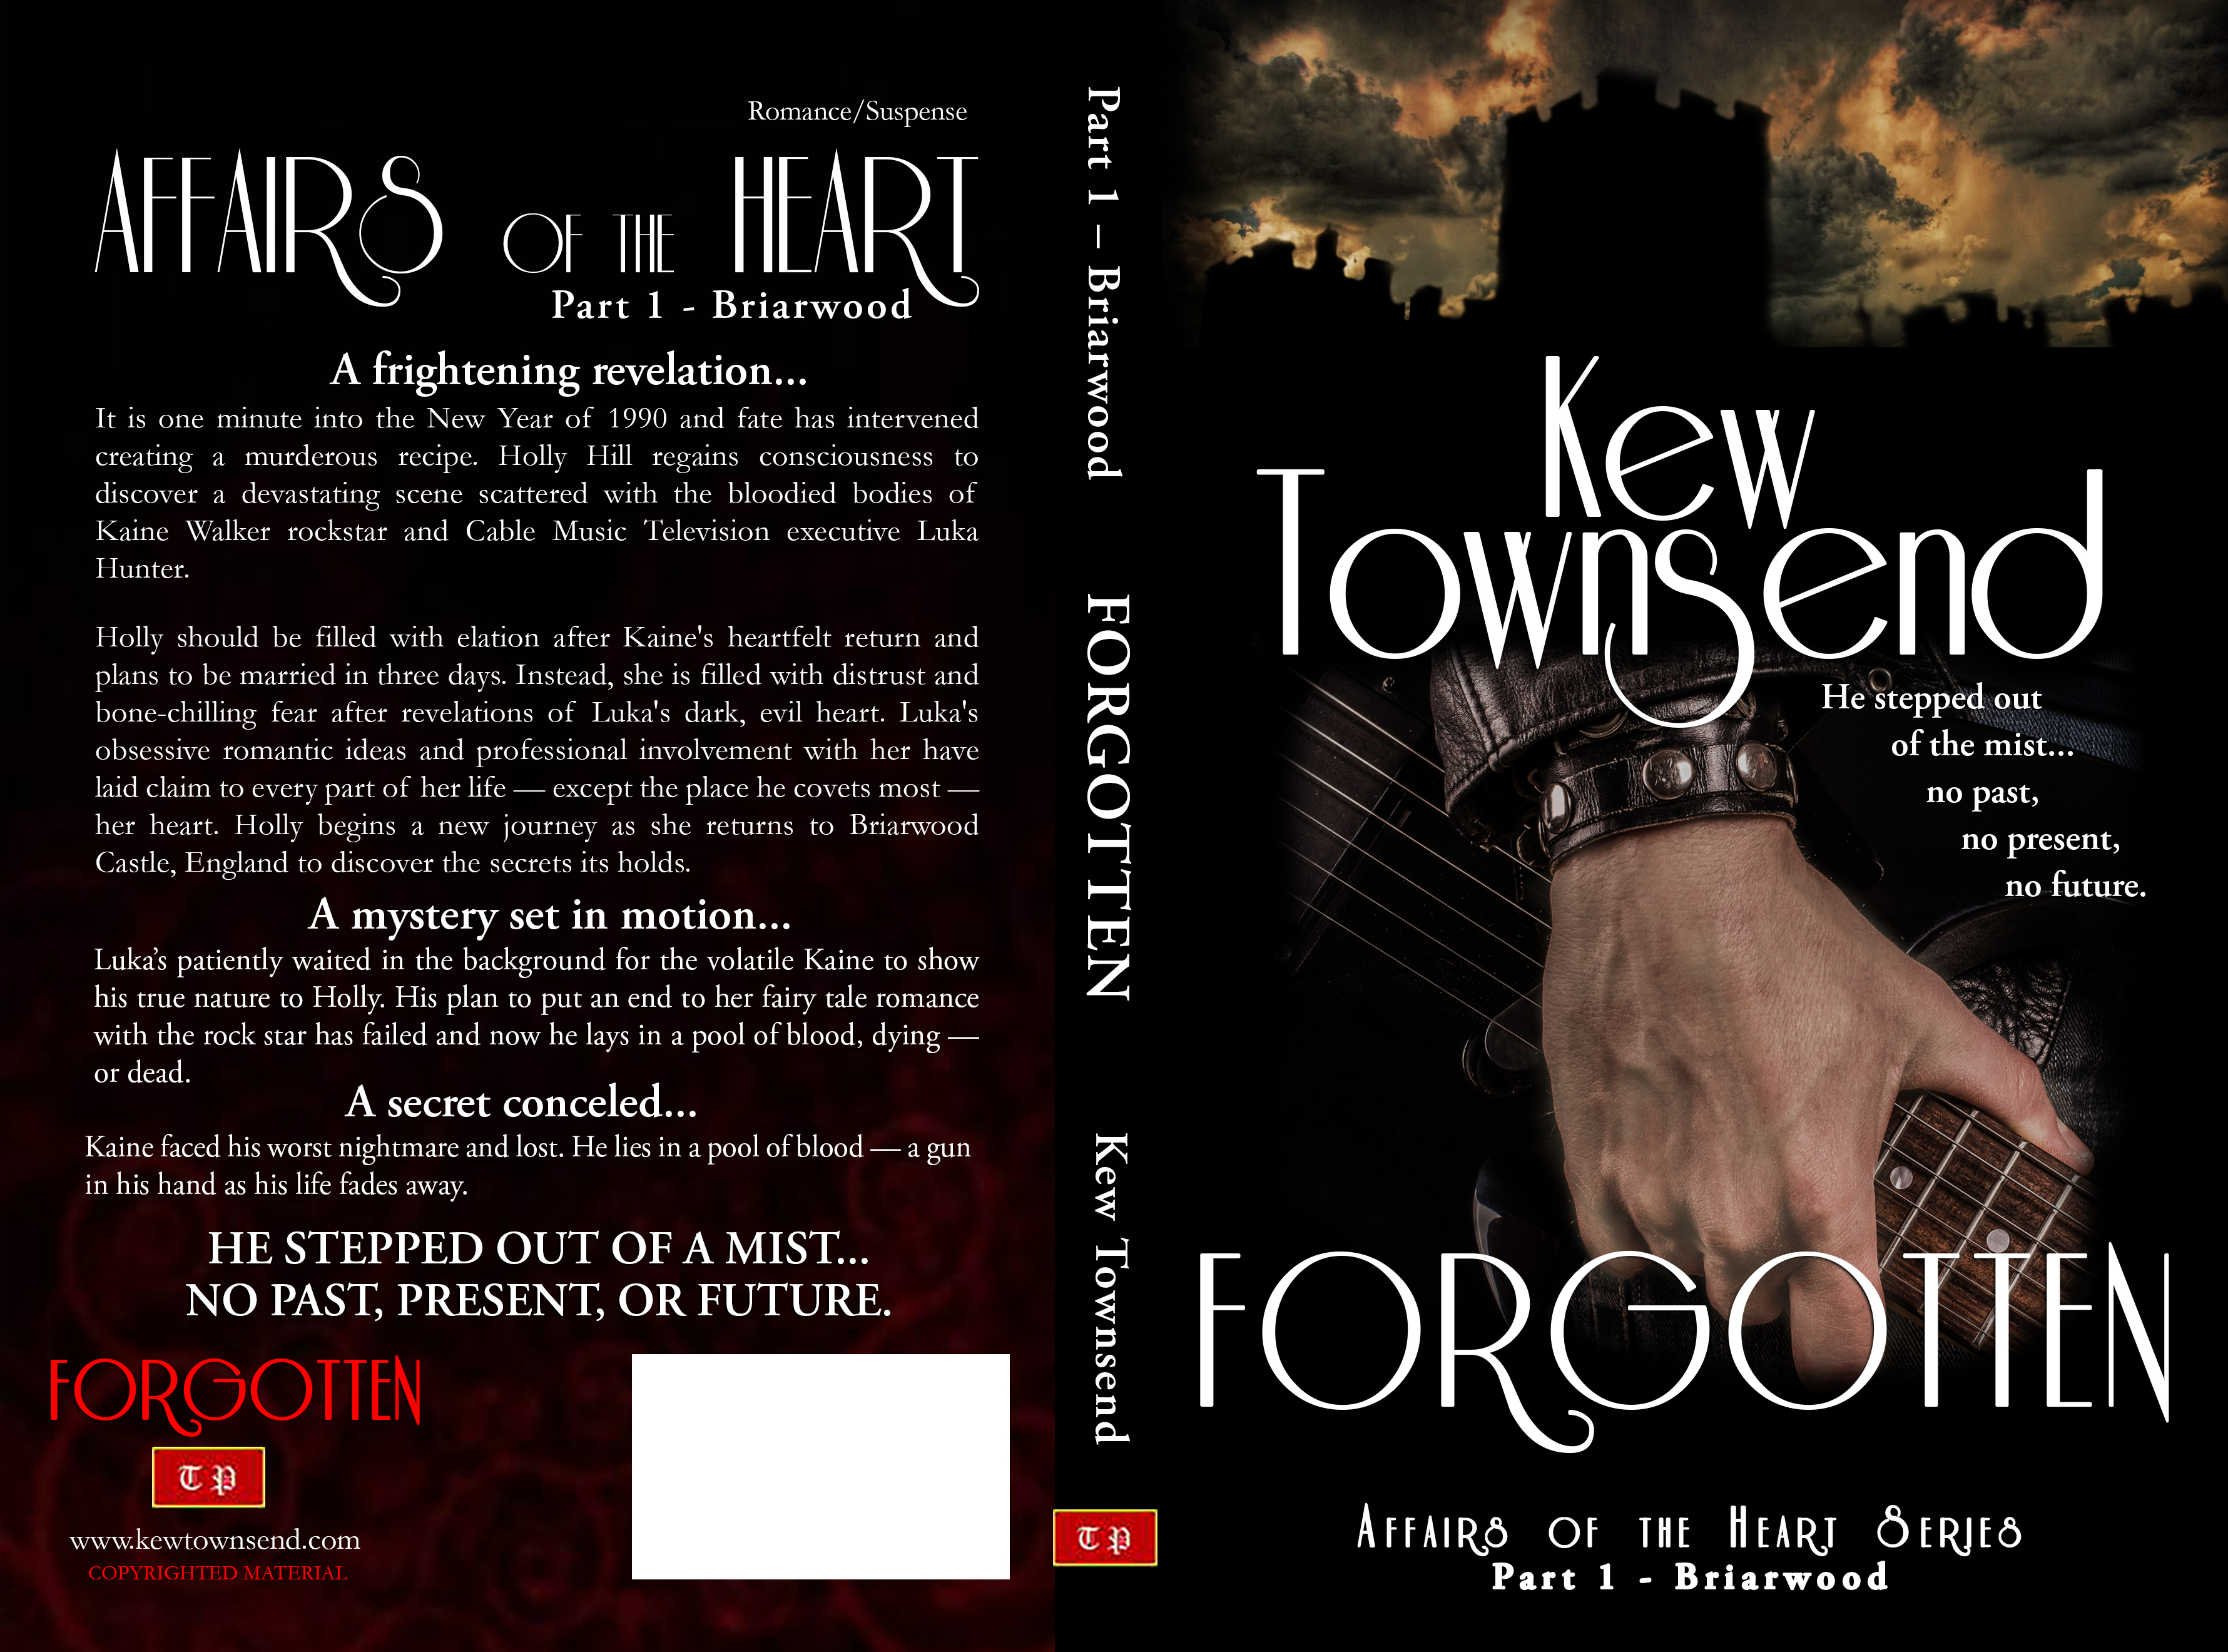 FORGOTTEN Print Cover by Kew Townsend